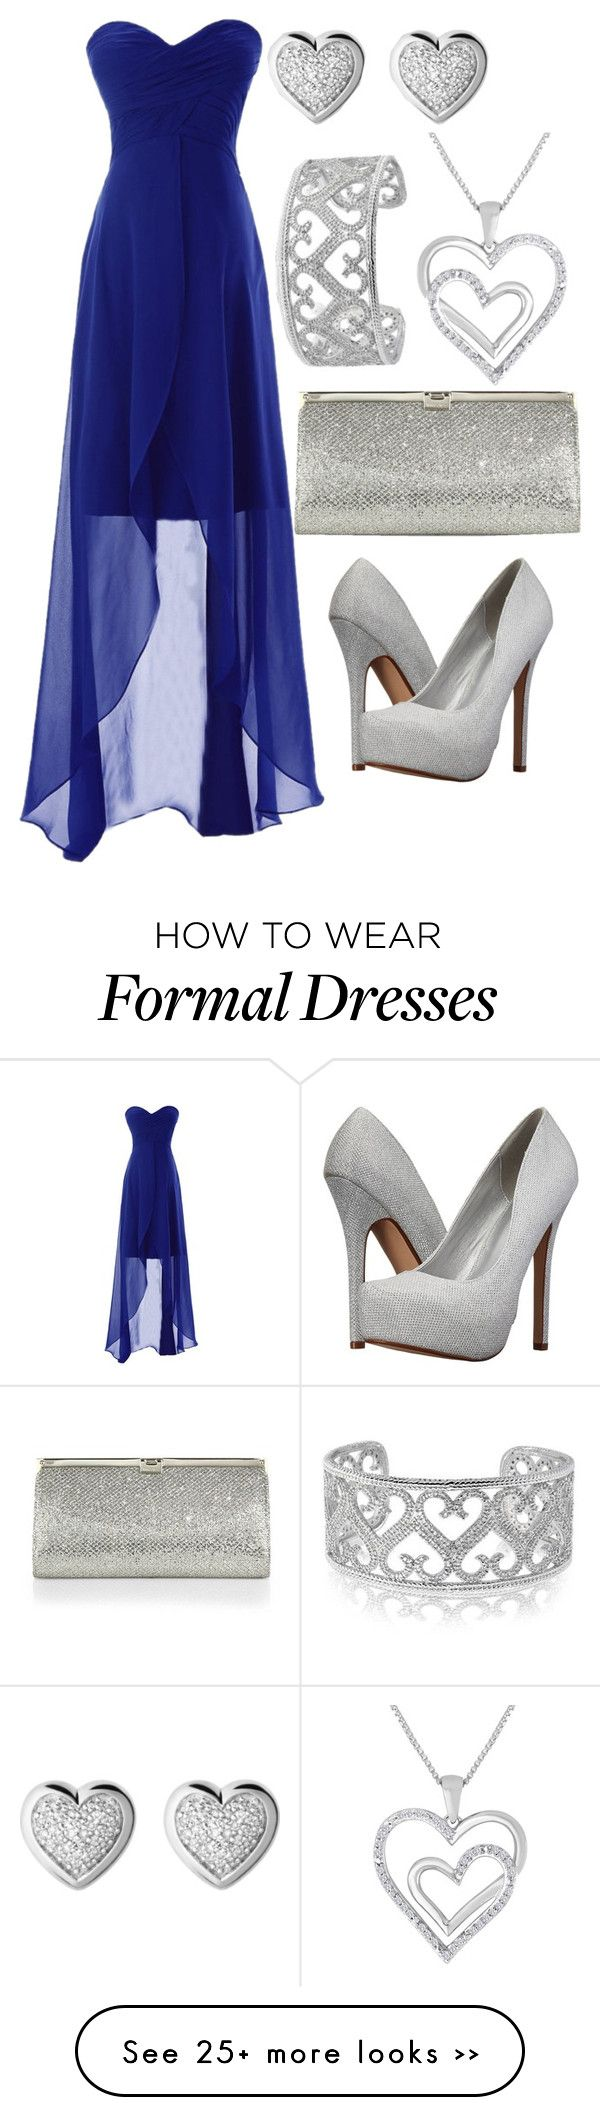 """""""Ever After High Formal: Daring Charming"""" by becka-ramey on Polyvore featuring Call it SPRING, Jimmy Choo, Links of London and Bling Jewelry"""